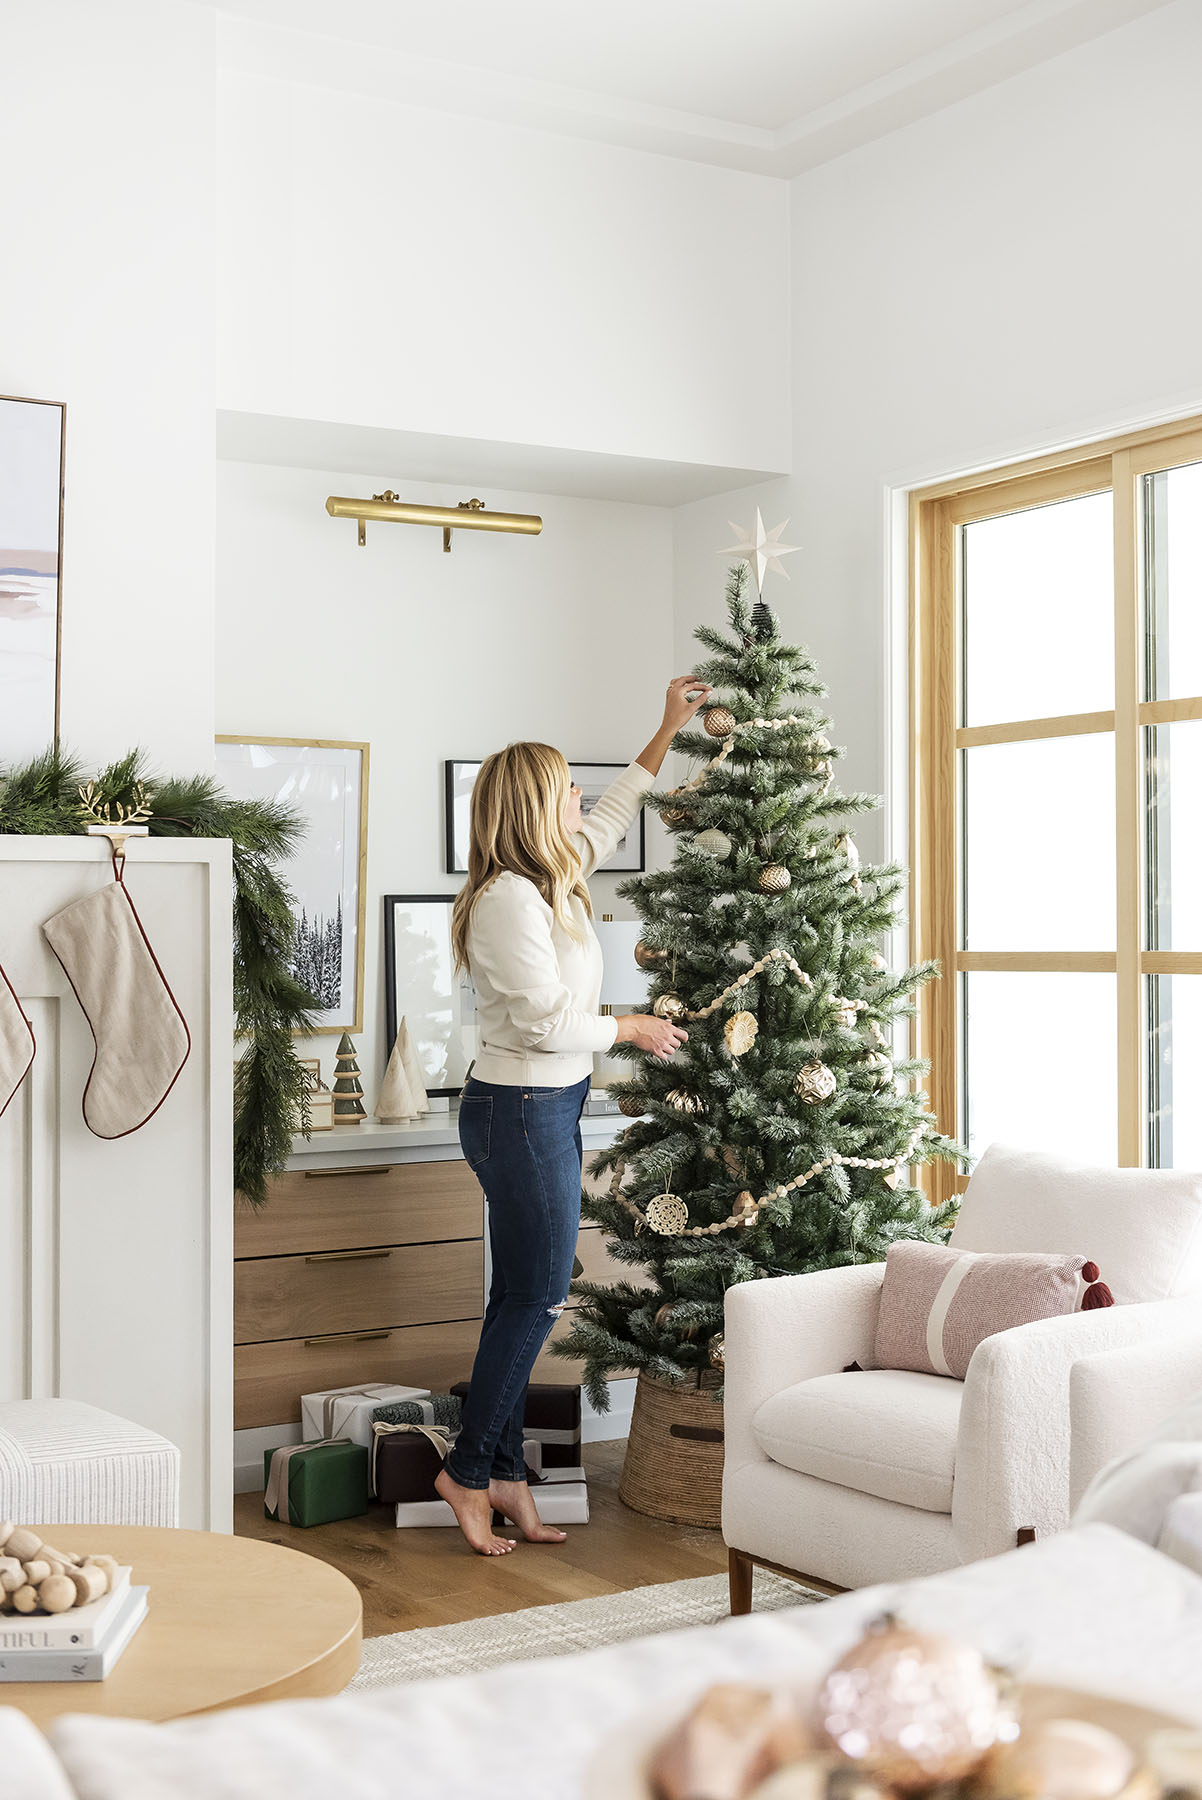 Decorating for the Holidays – Our Tips